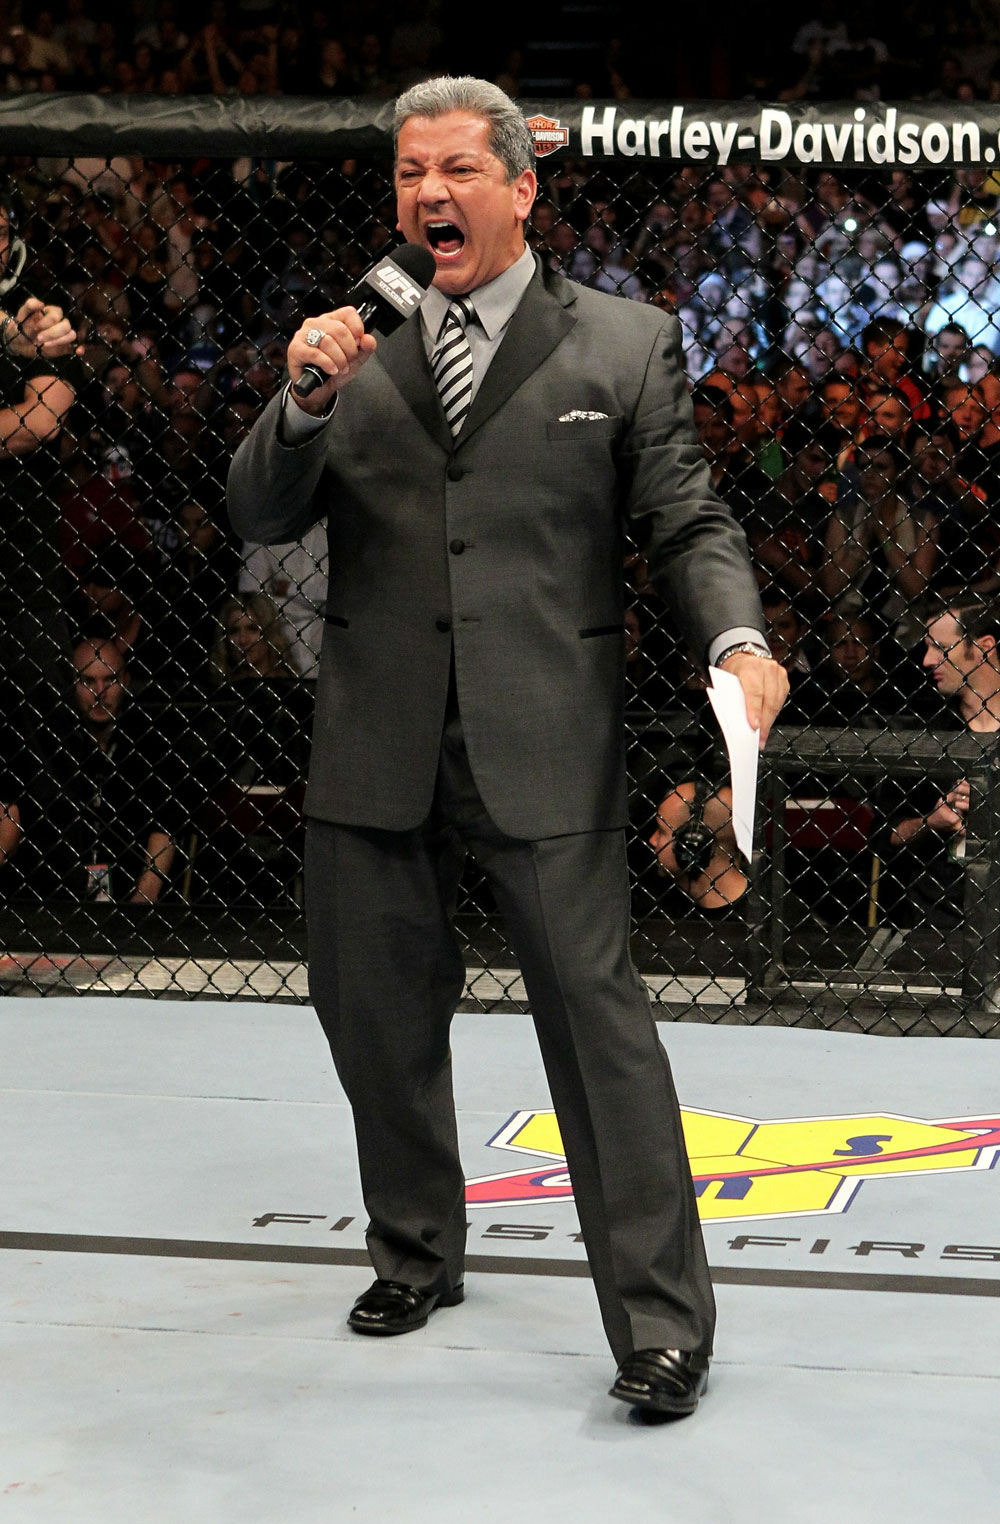 UFC 120: Bruce Buffer announces the main event